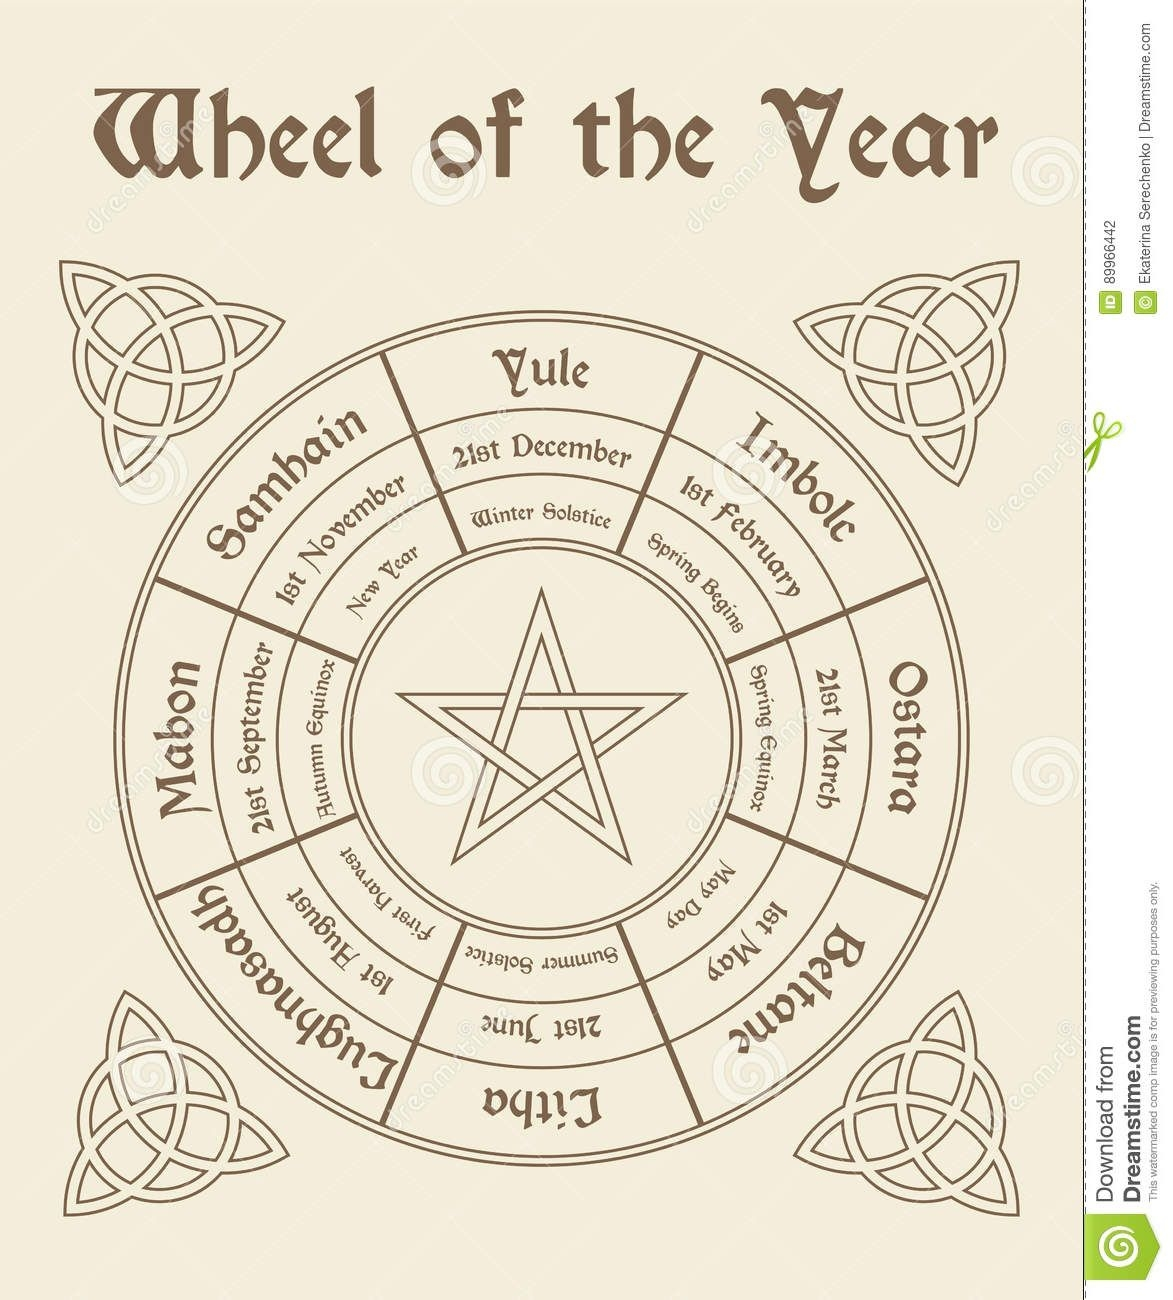 Year Wicca Stock Illustrations – 175 Year Wicca Stock